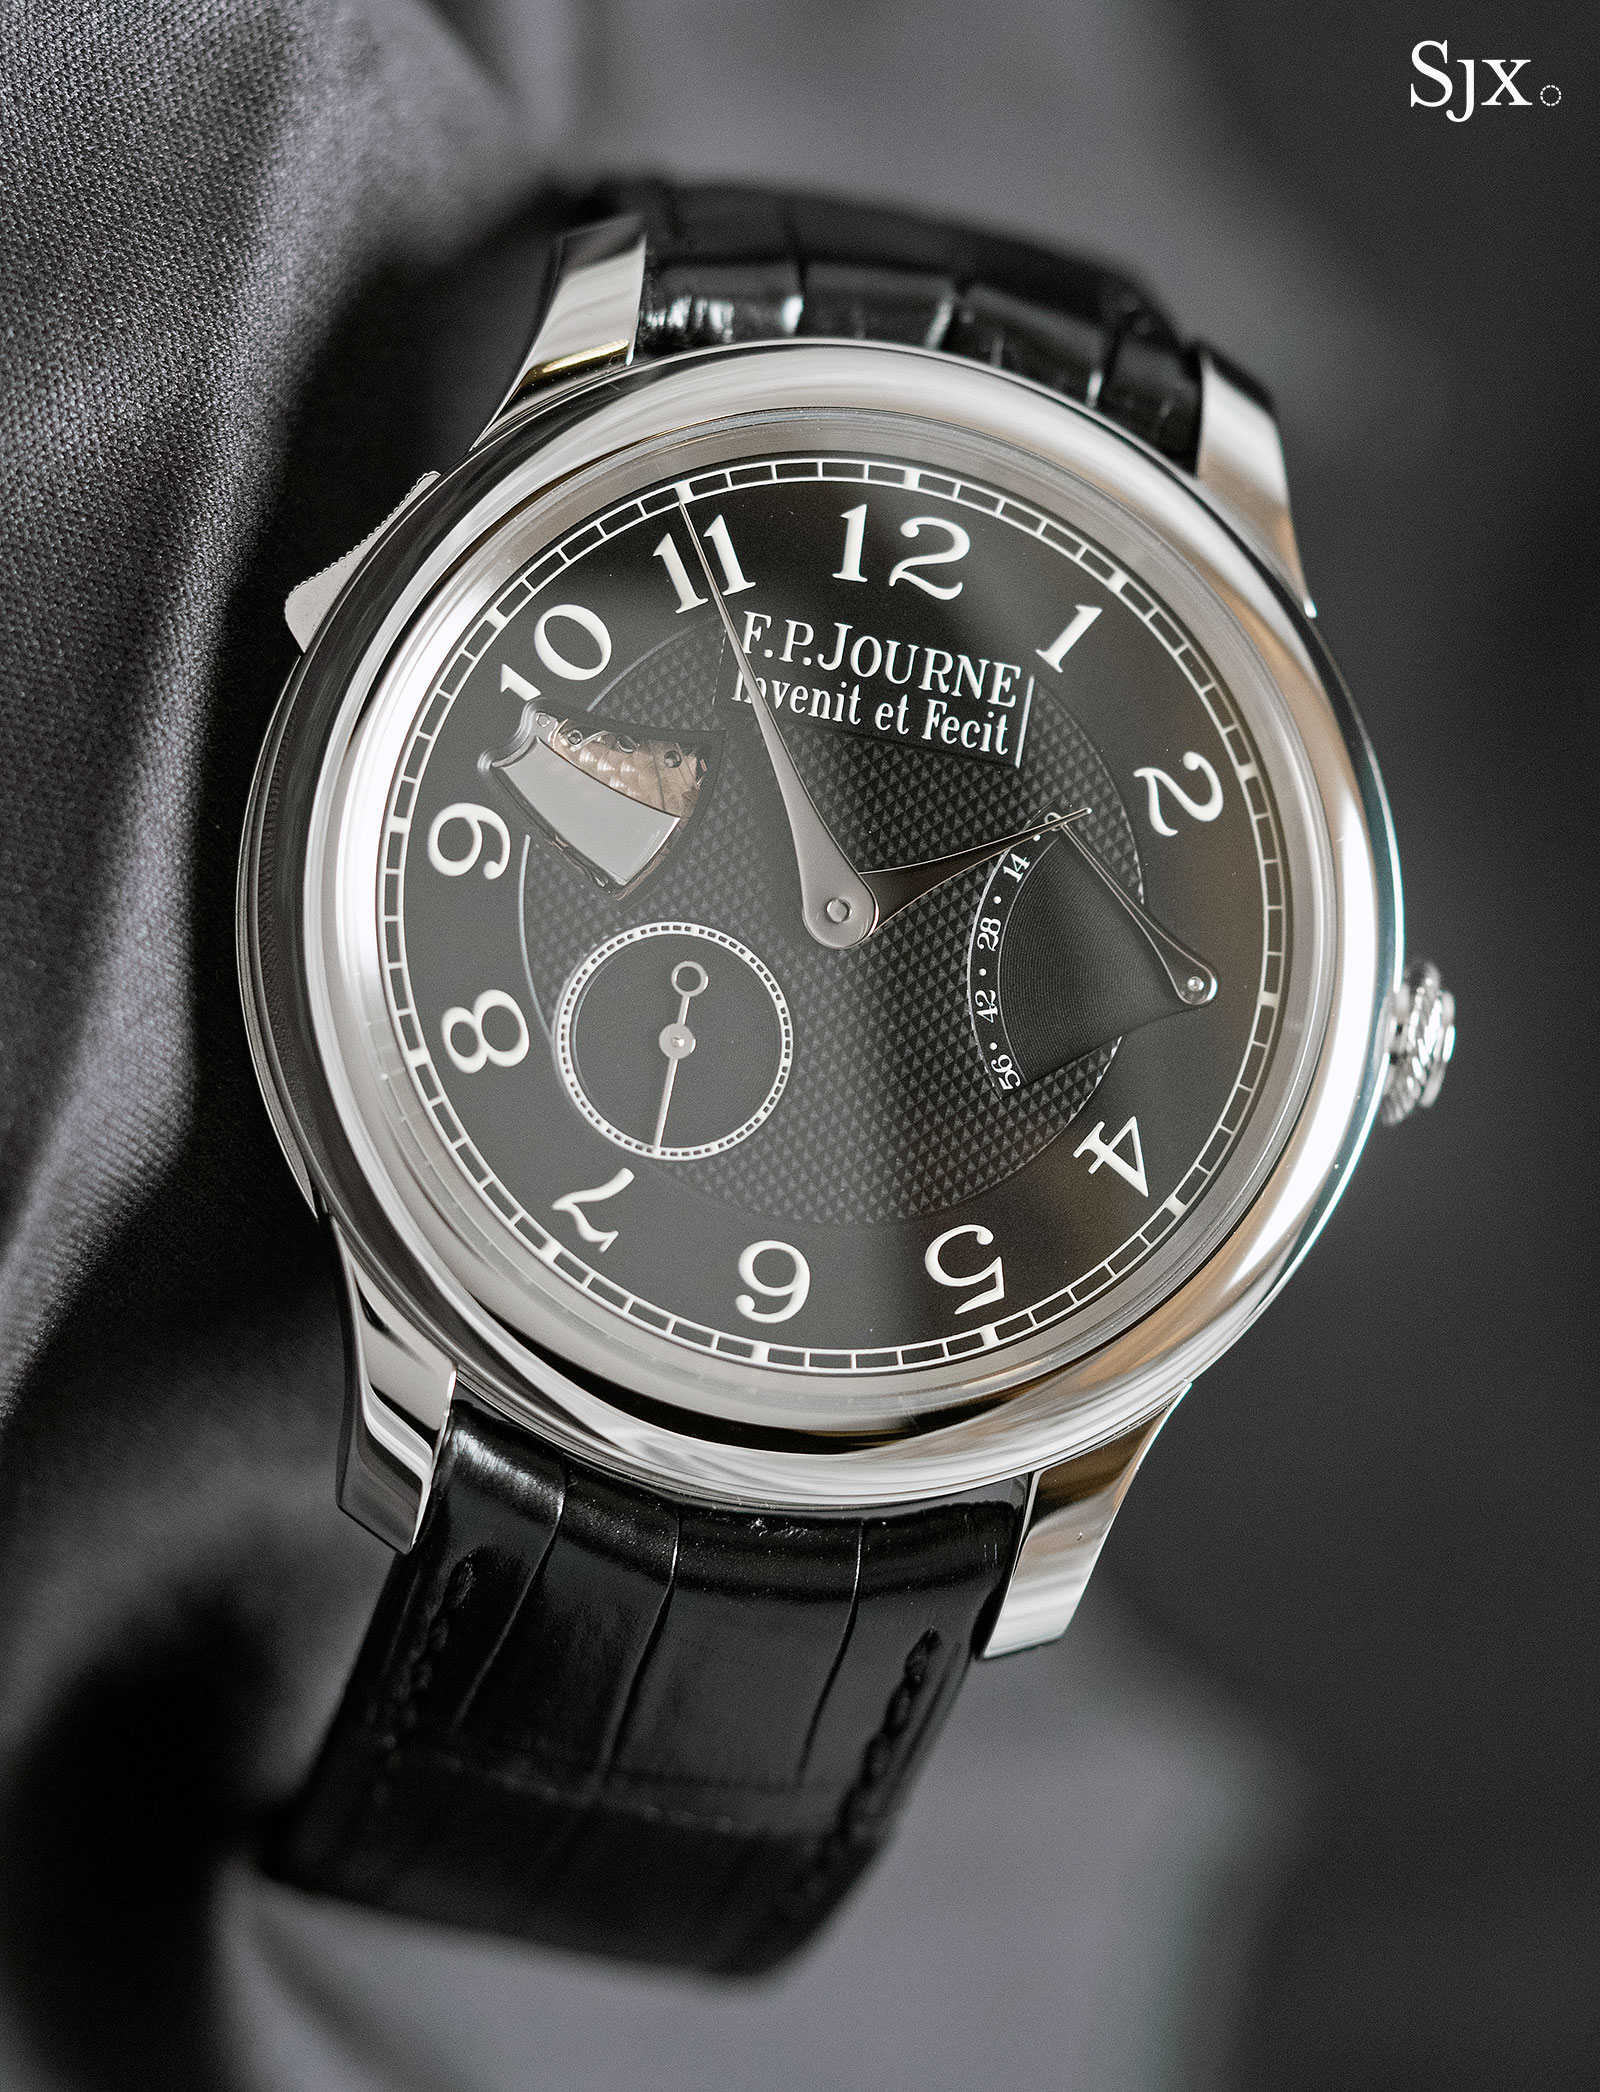 FP Journe Black Label Minute Repeater 1